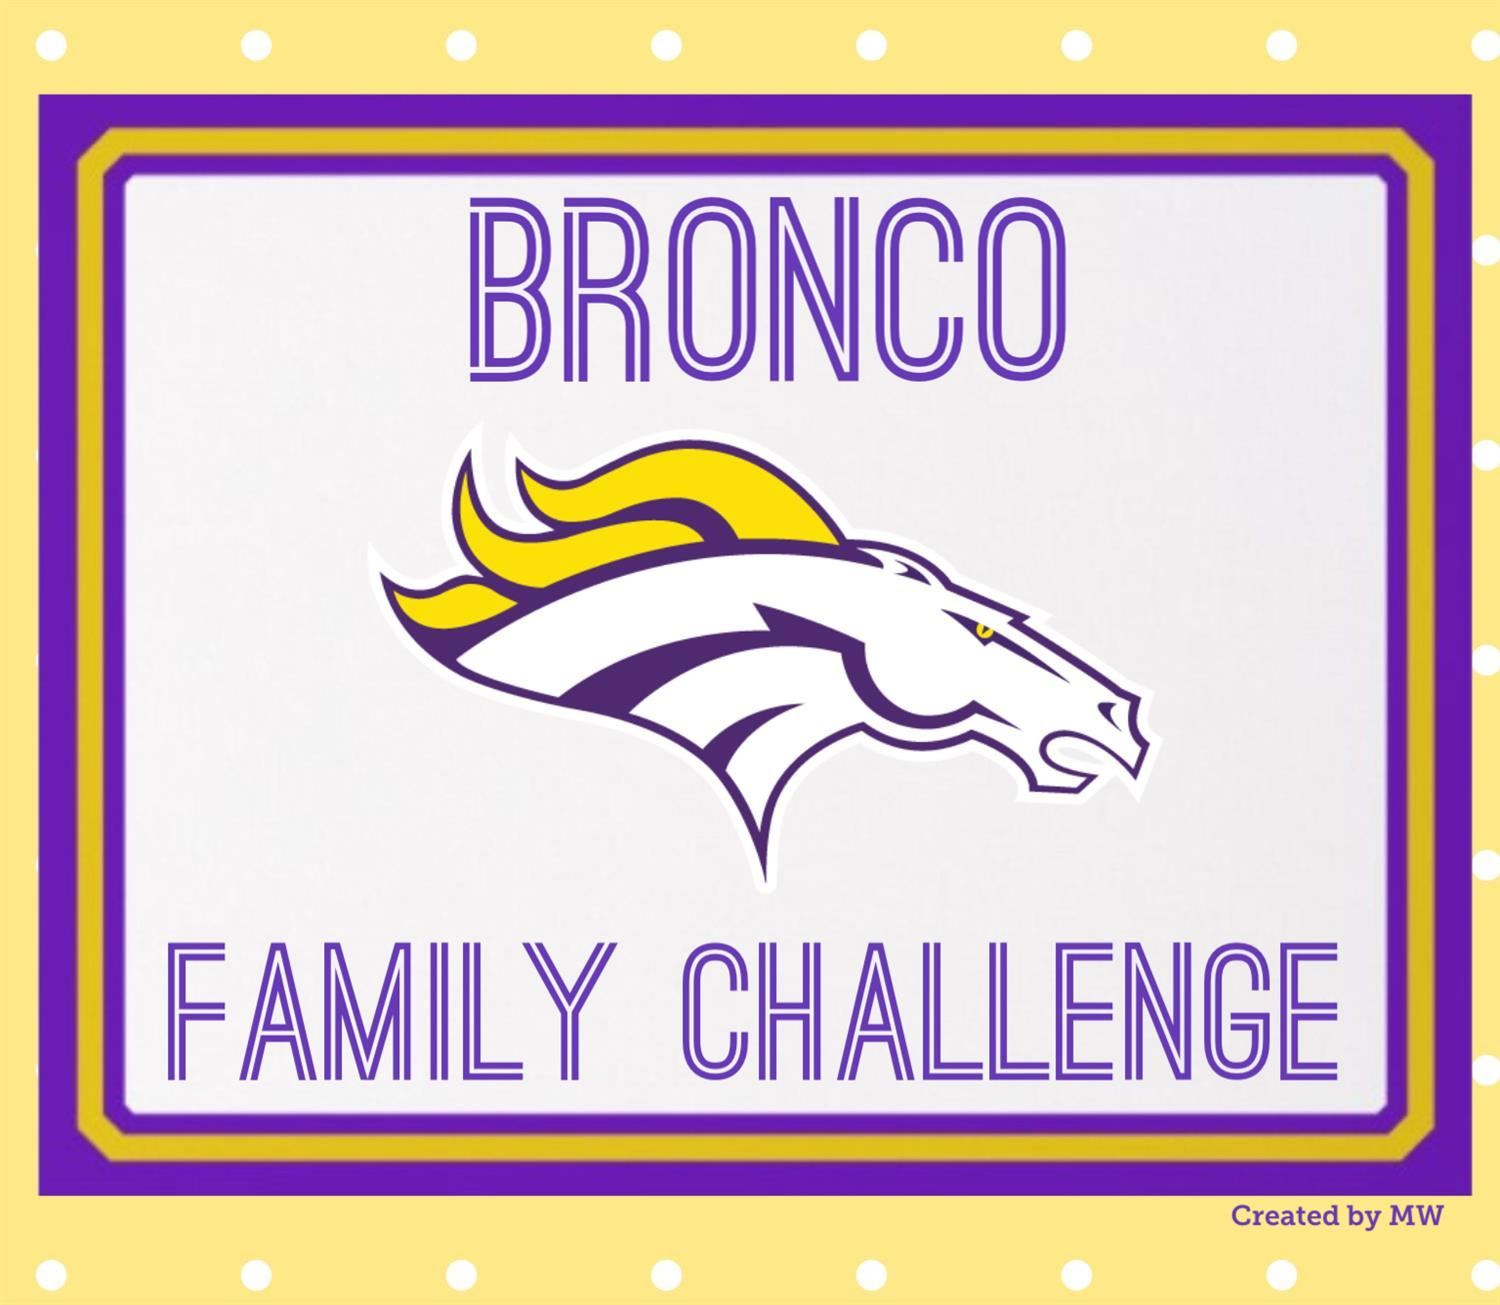 Bronco Family Challenge - Click Read Full Story to see what our weekly challenges are for the month of August!